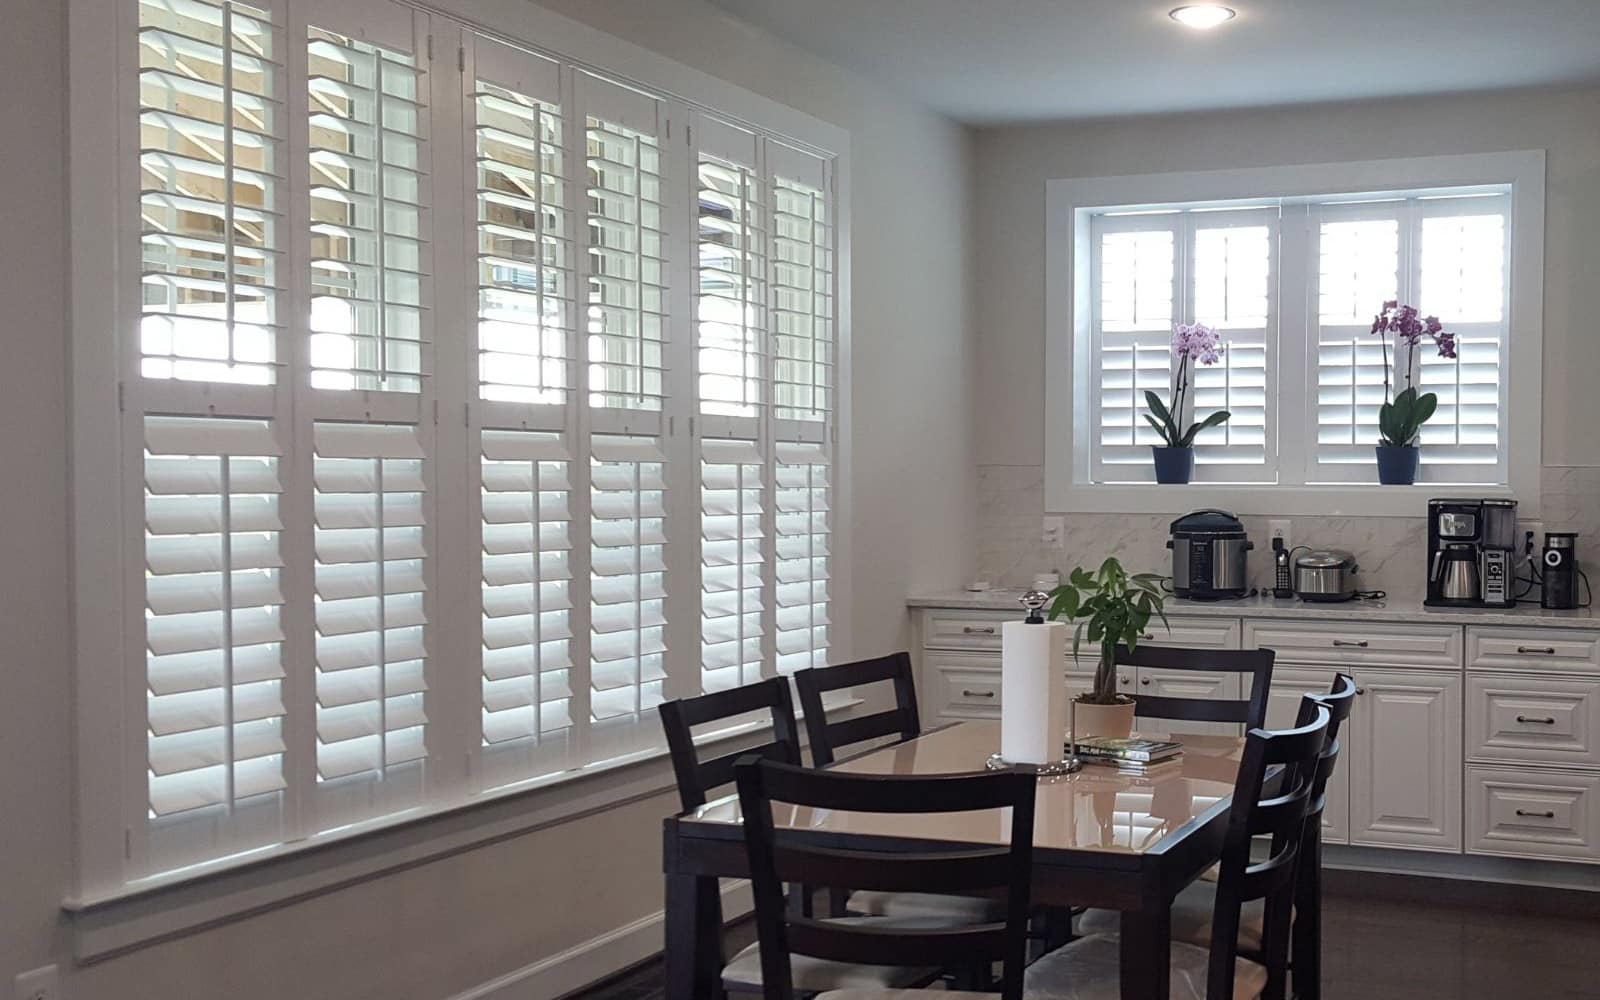 7 Reasons To Install Plantation Shutters